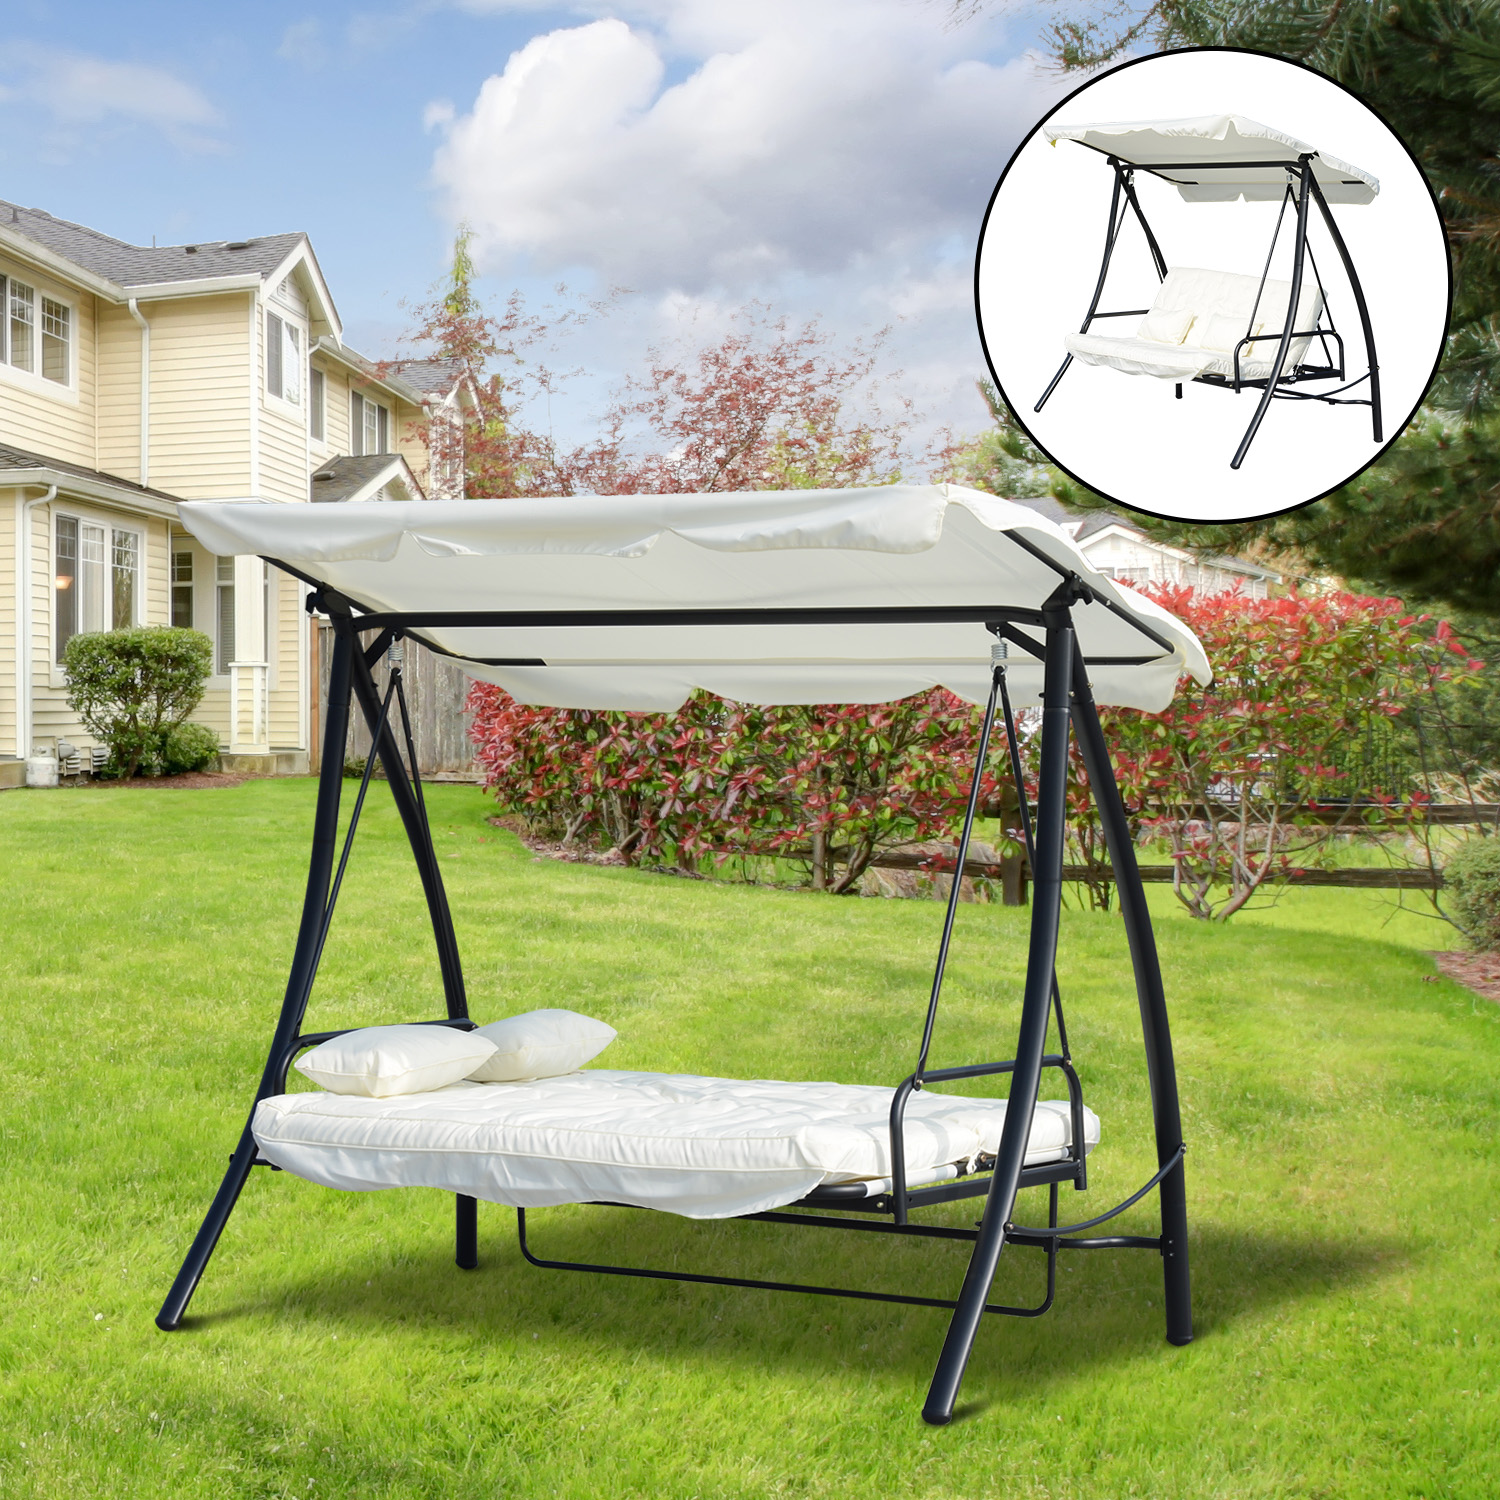 Image of CAD $299.99 Outsunny 3 Seater Swing Chair 2-in-1 Lounge Hammock Cushioned Seat Portable Outdoor Porch with Canopy Cream White / HEAVY DUTY Garden Patio Convertible Bed Backyard w/ Canada 95509791207